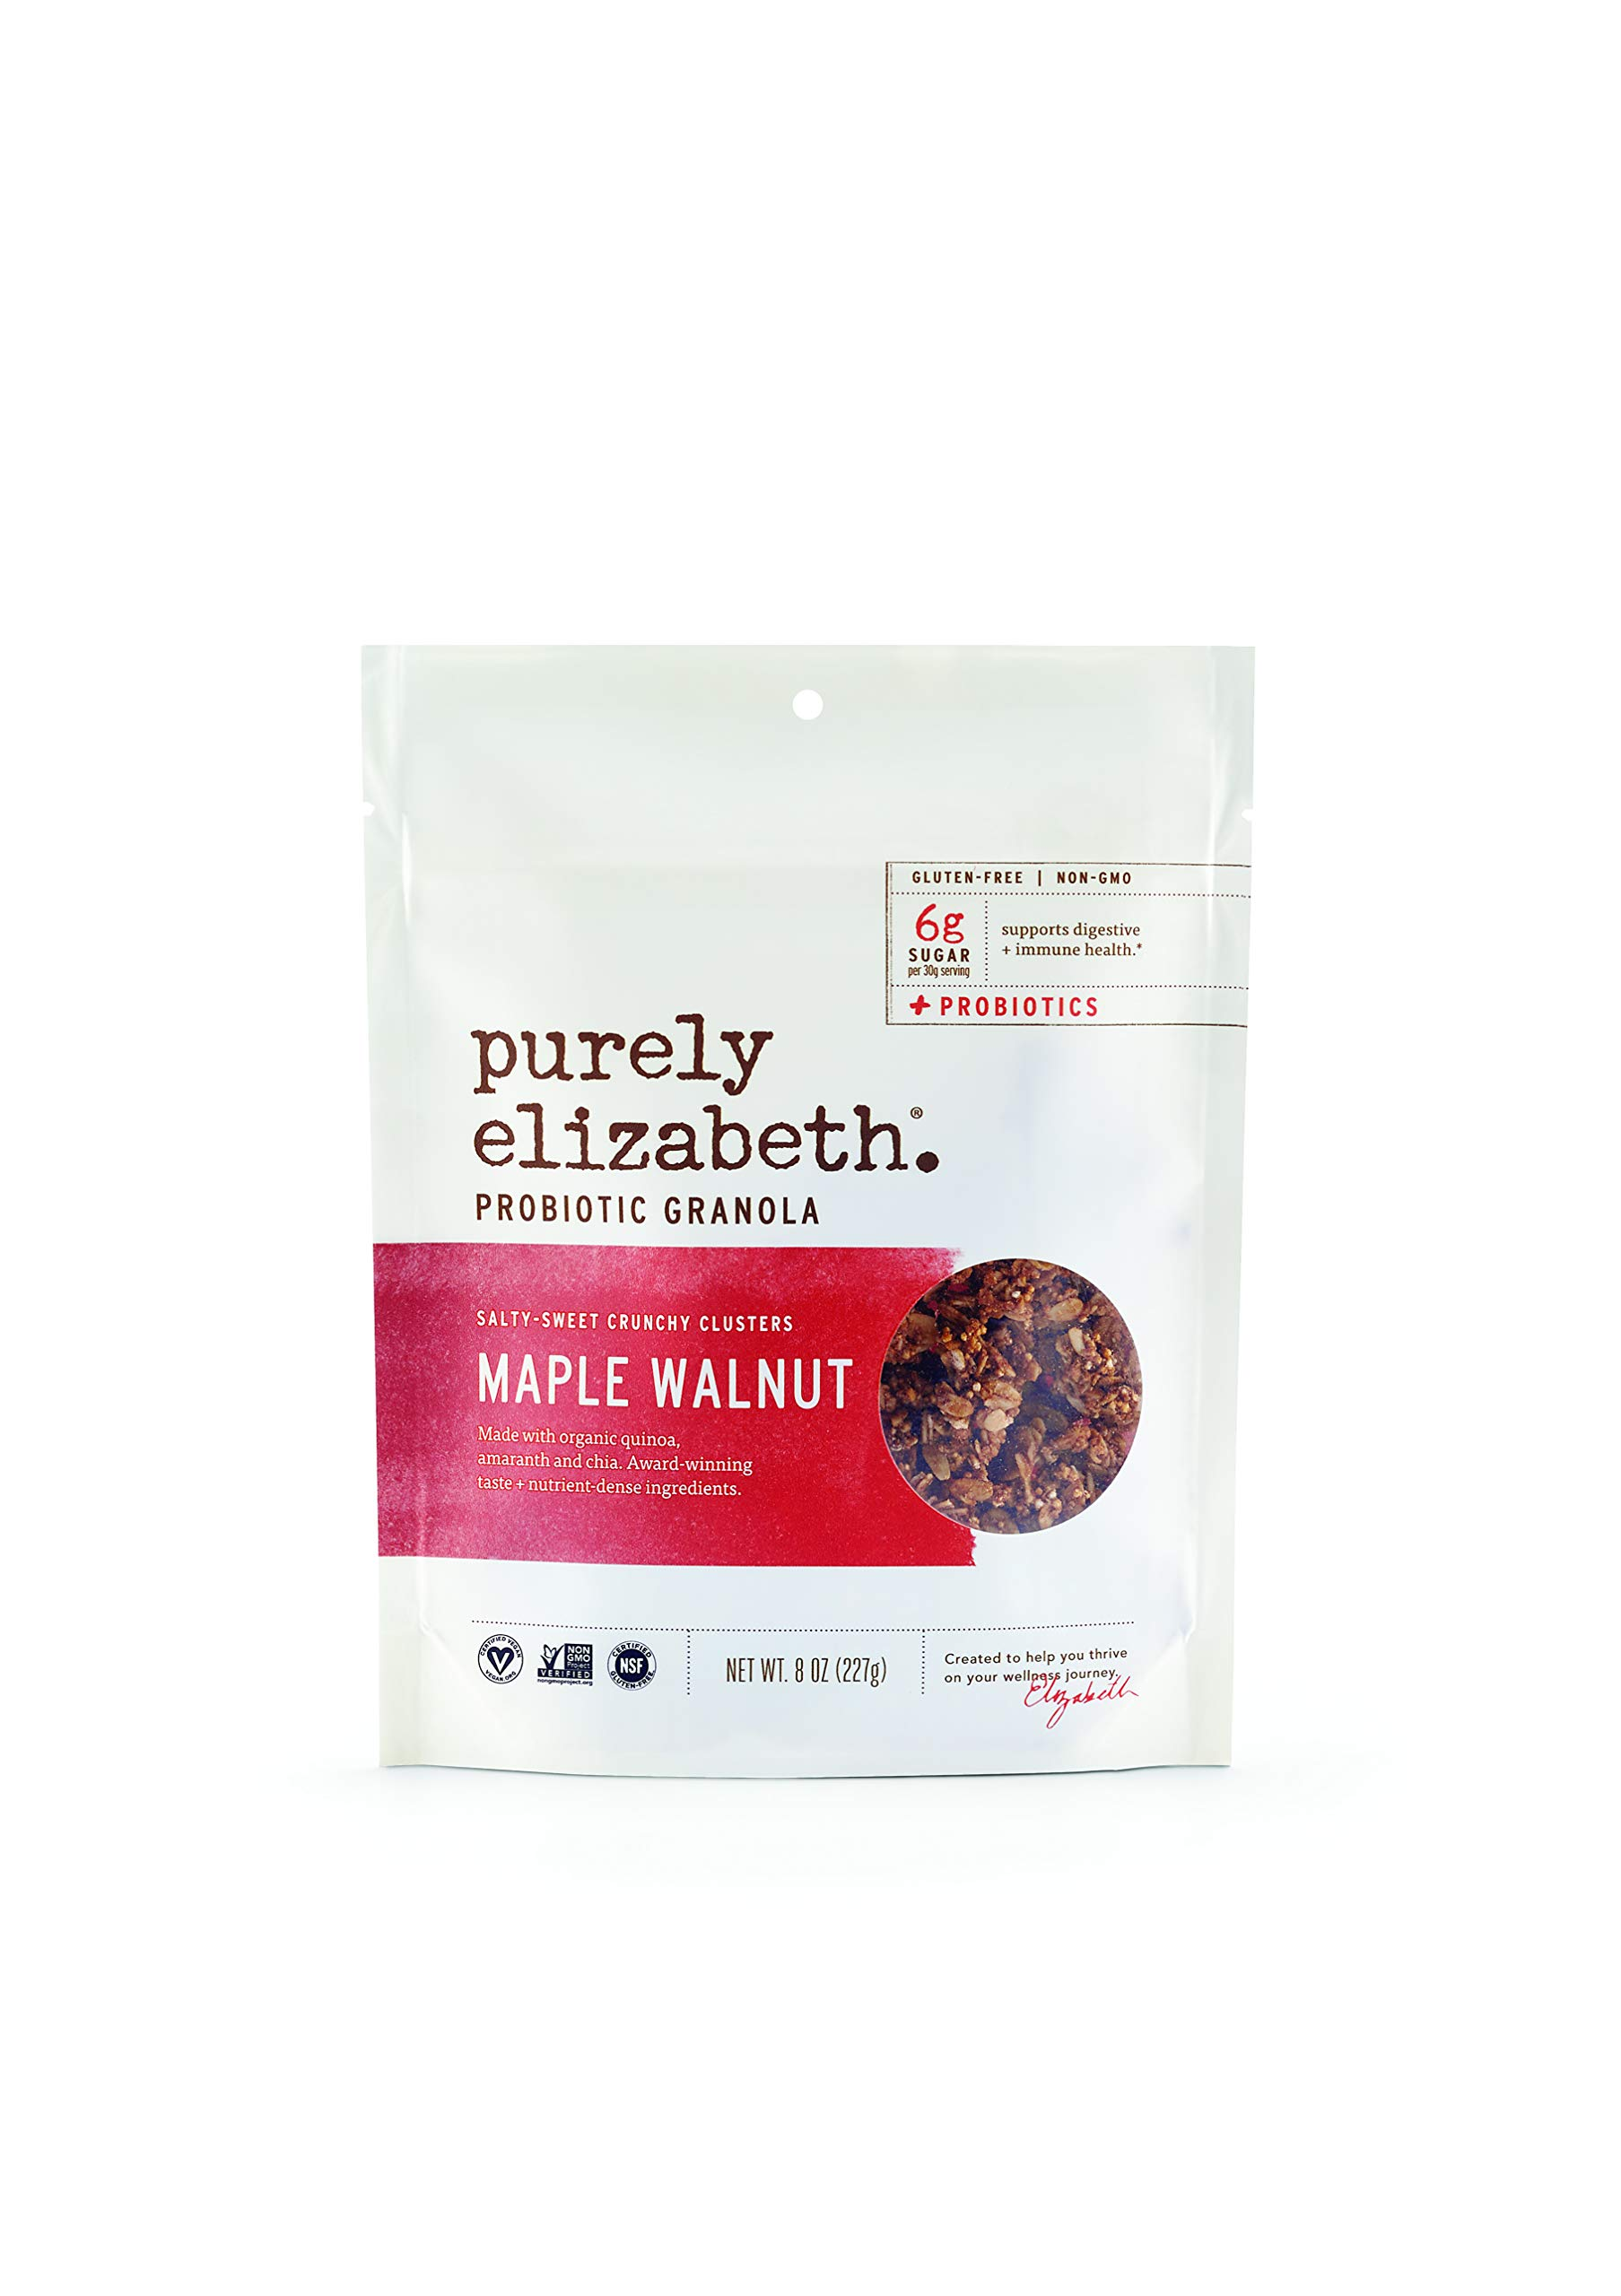 Purely Elizabeth Probiotic Granola, Certified Gluten-Free, Organic & Vegan | Probiotic-Infused Healthy Snack | Nutrient-Packed - Maple Walnut - 8oz